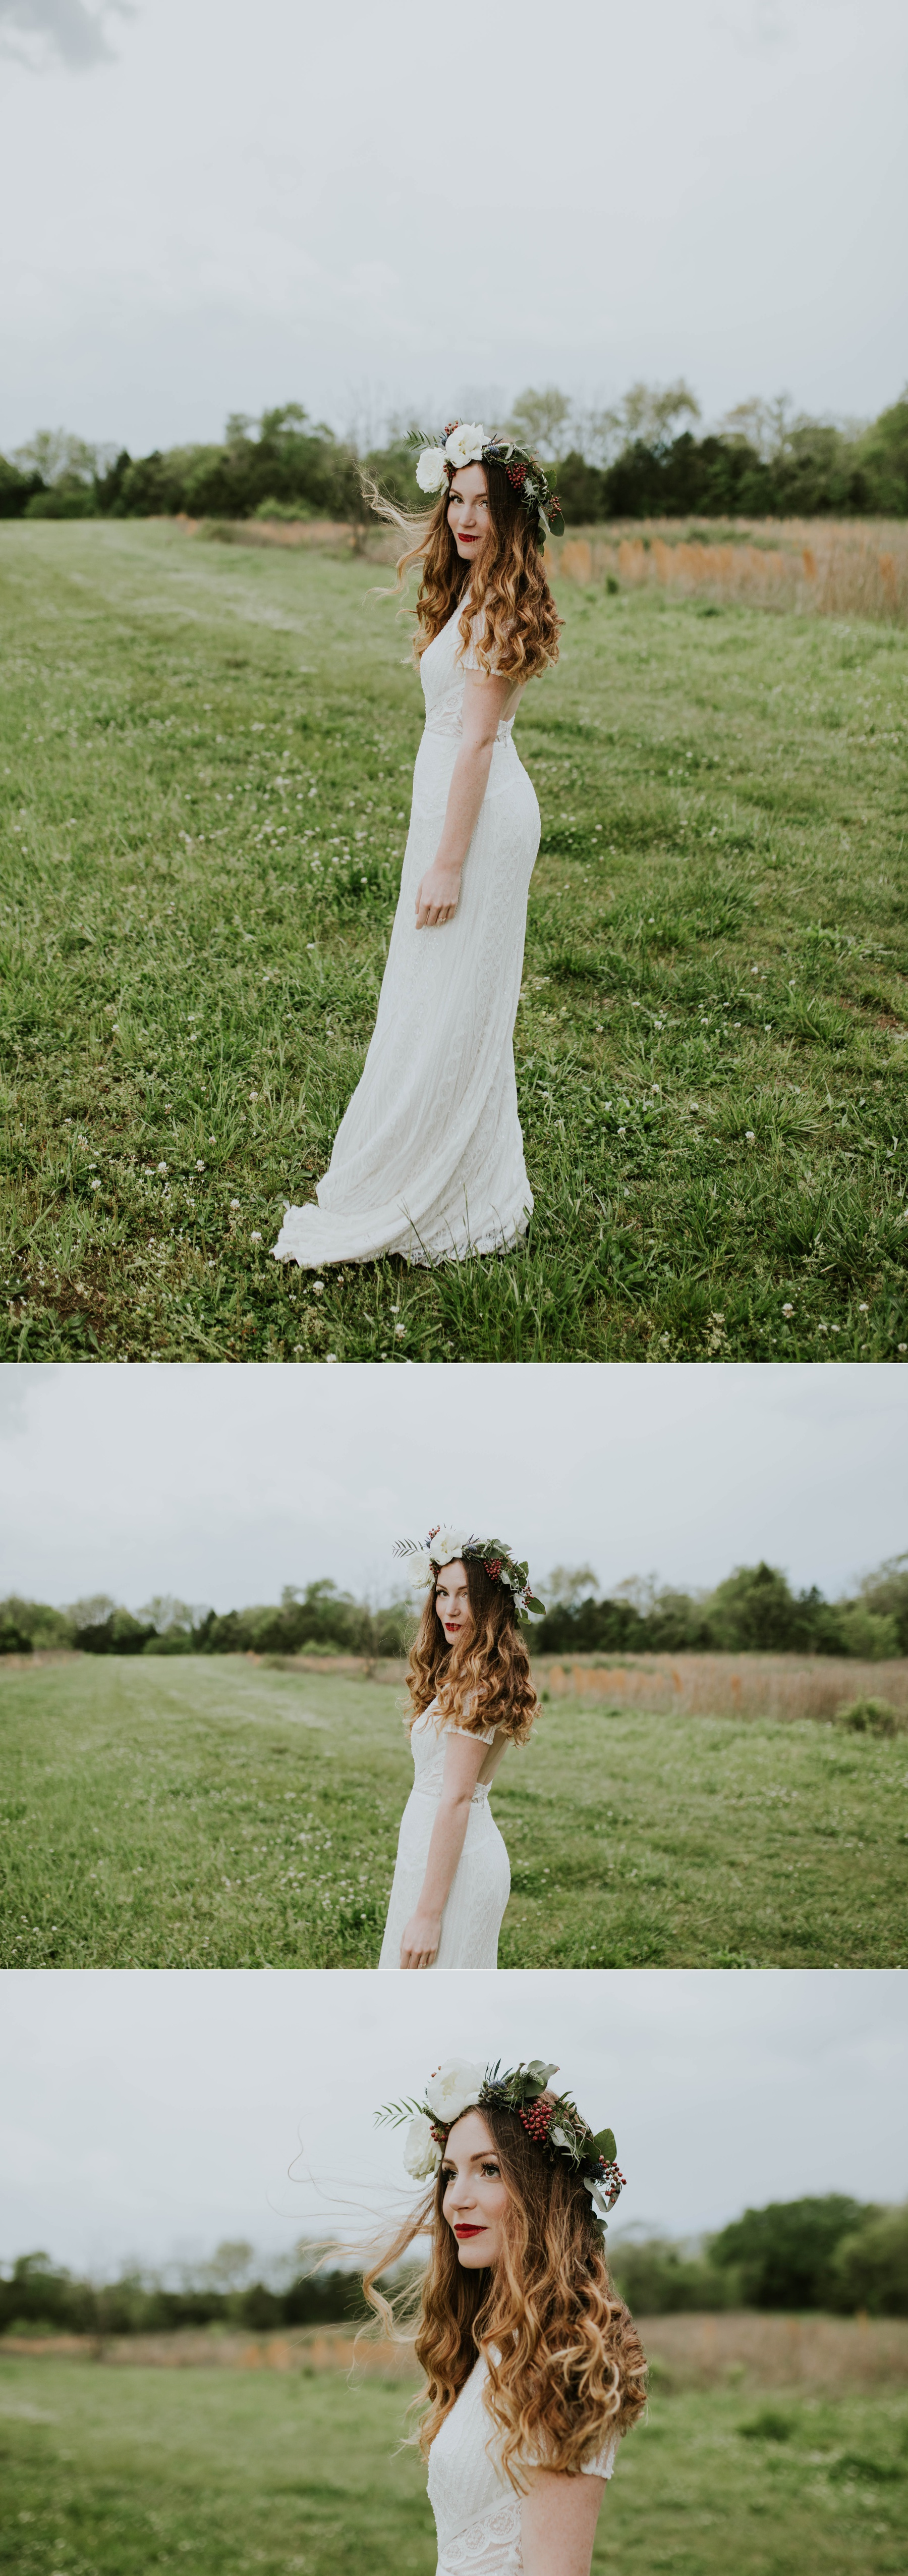 ThroughVictoriasLens_CedarsOfLebanon_Bridals7.jpg